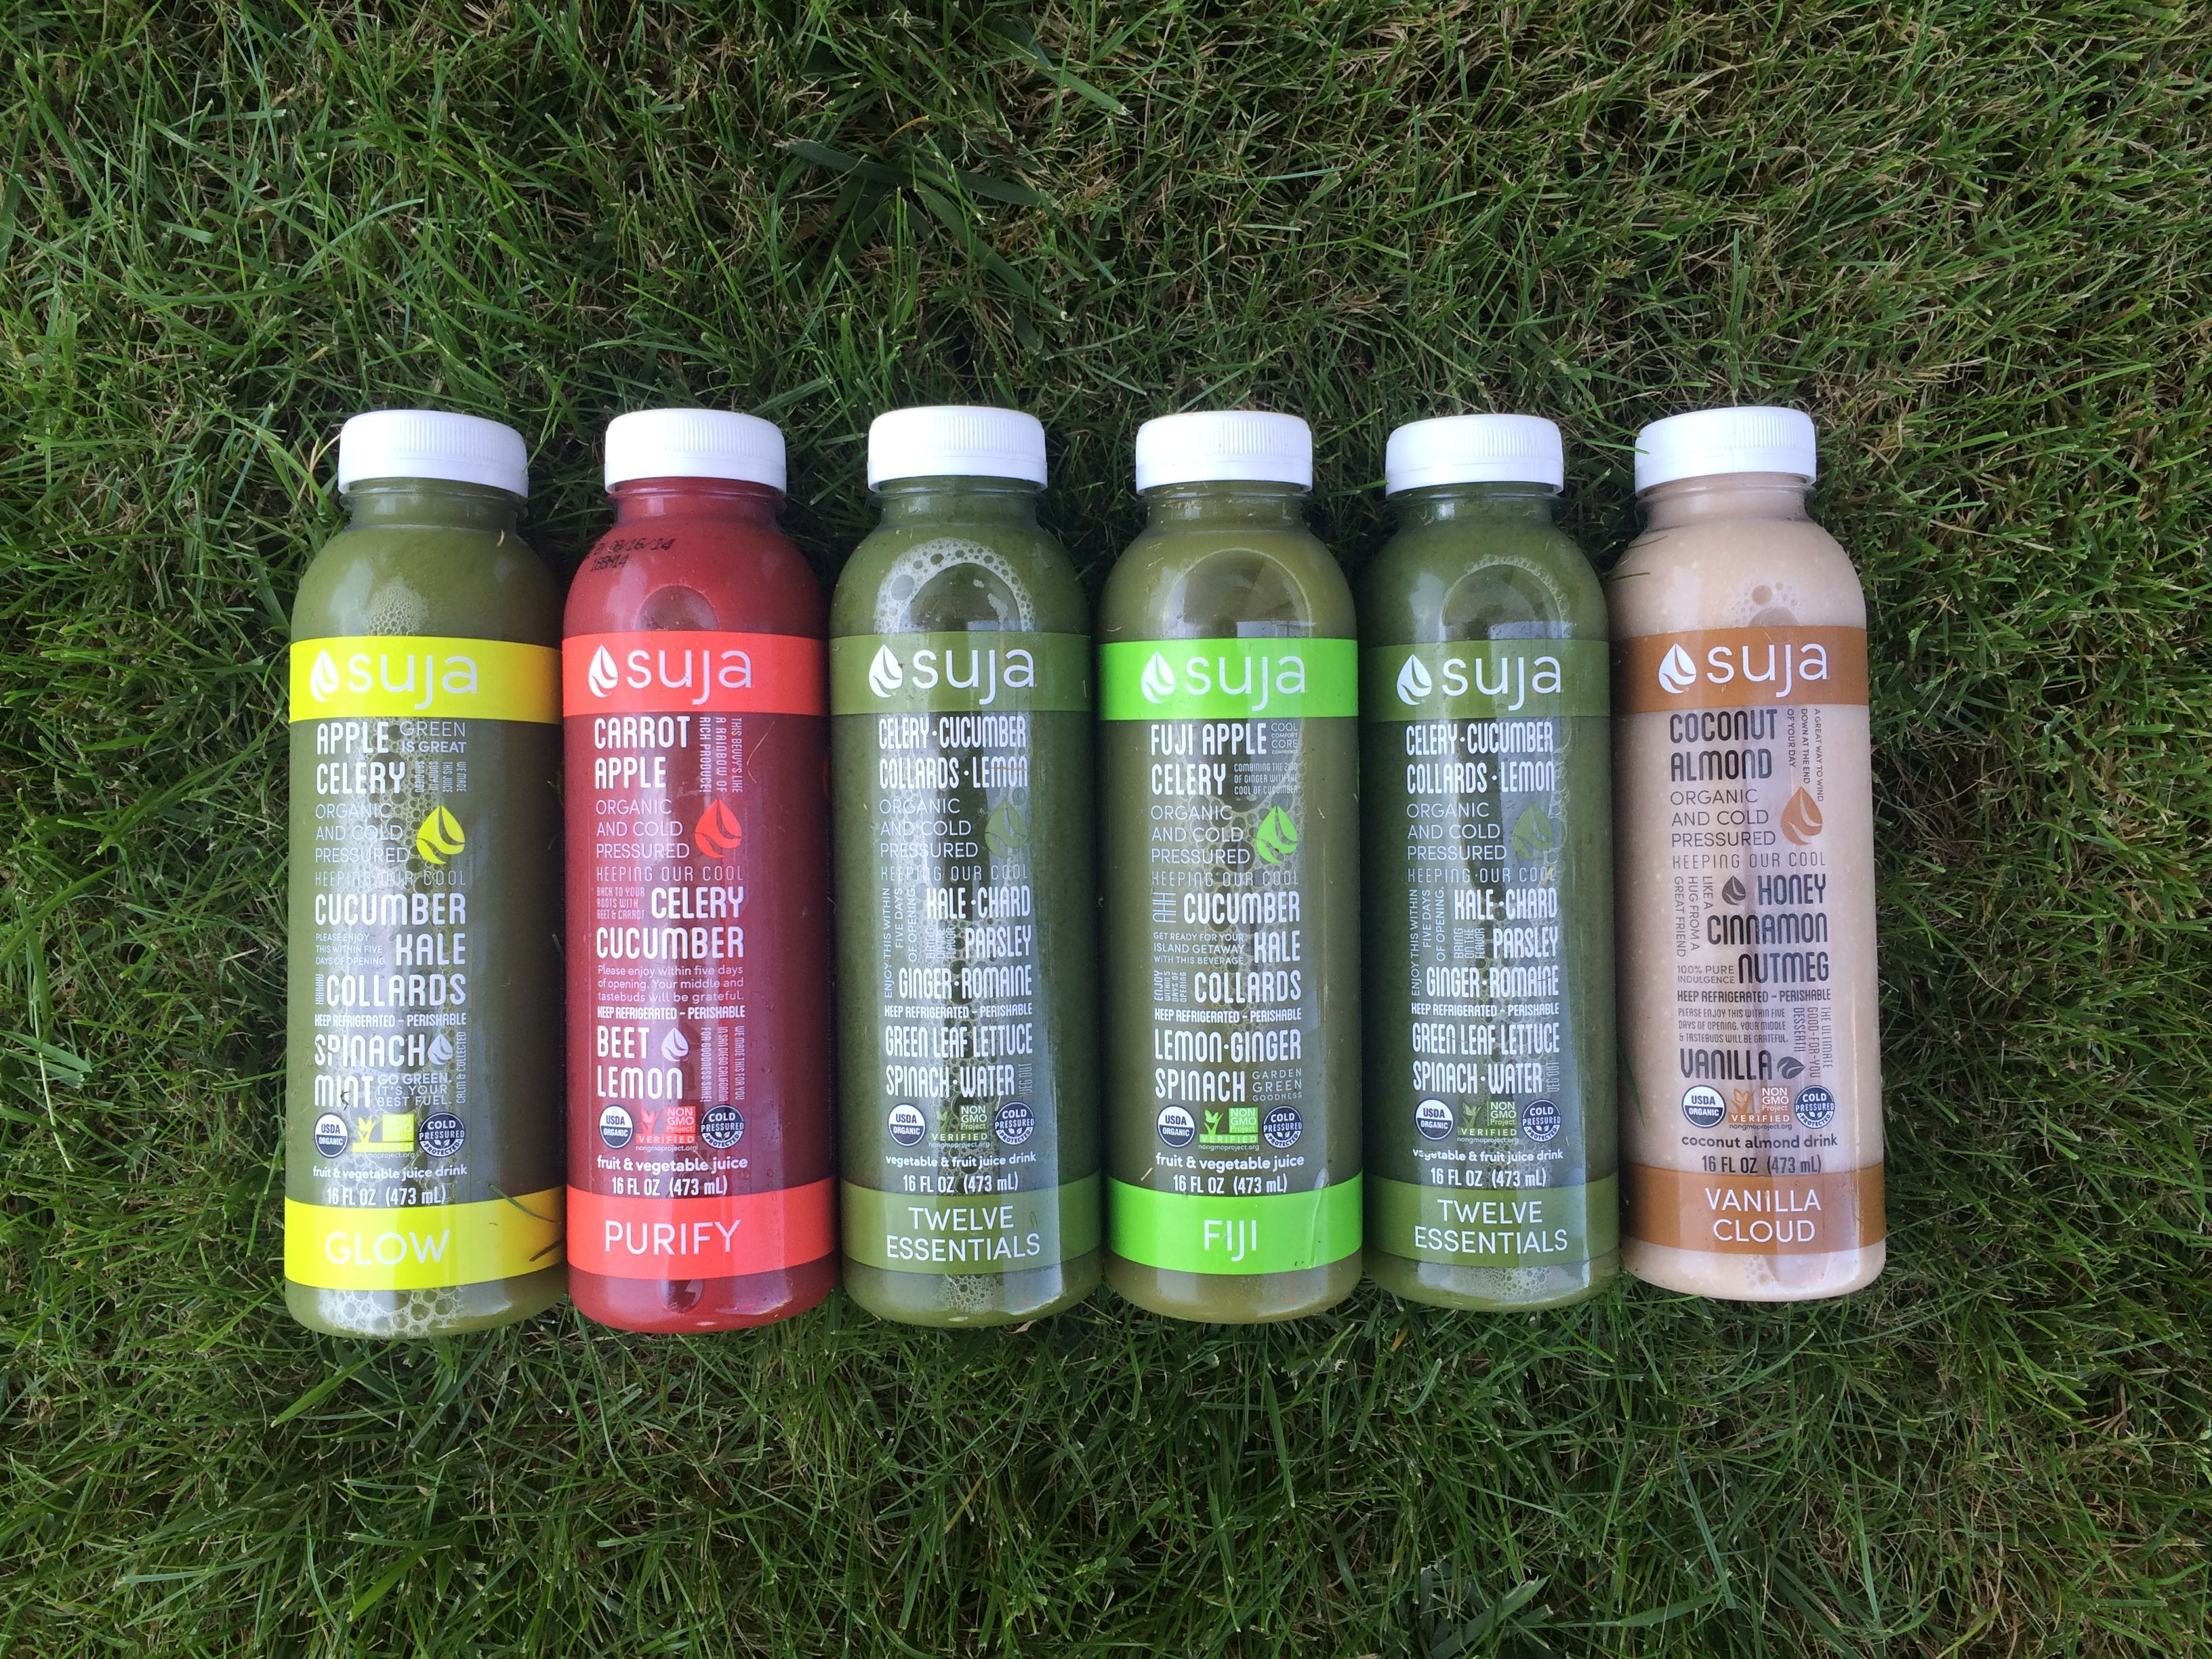 Our new Core Fresh Start was designed for green juice lovers only! Lower in sugar and calories than our Original Fresh Start but just as tasty :)